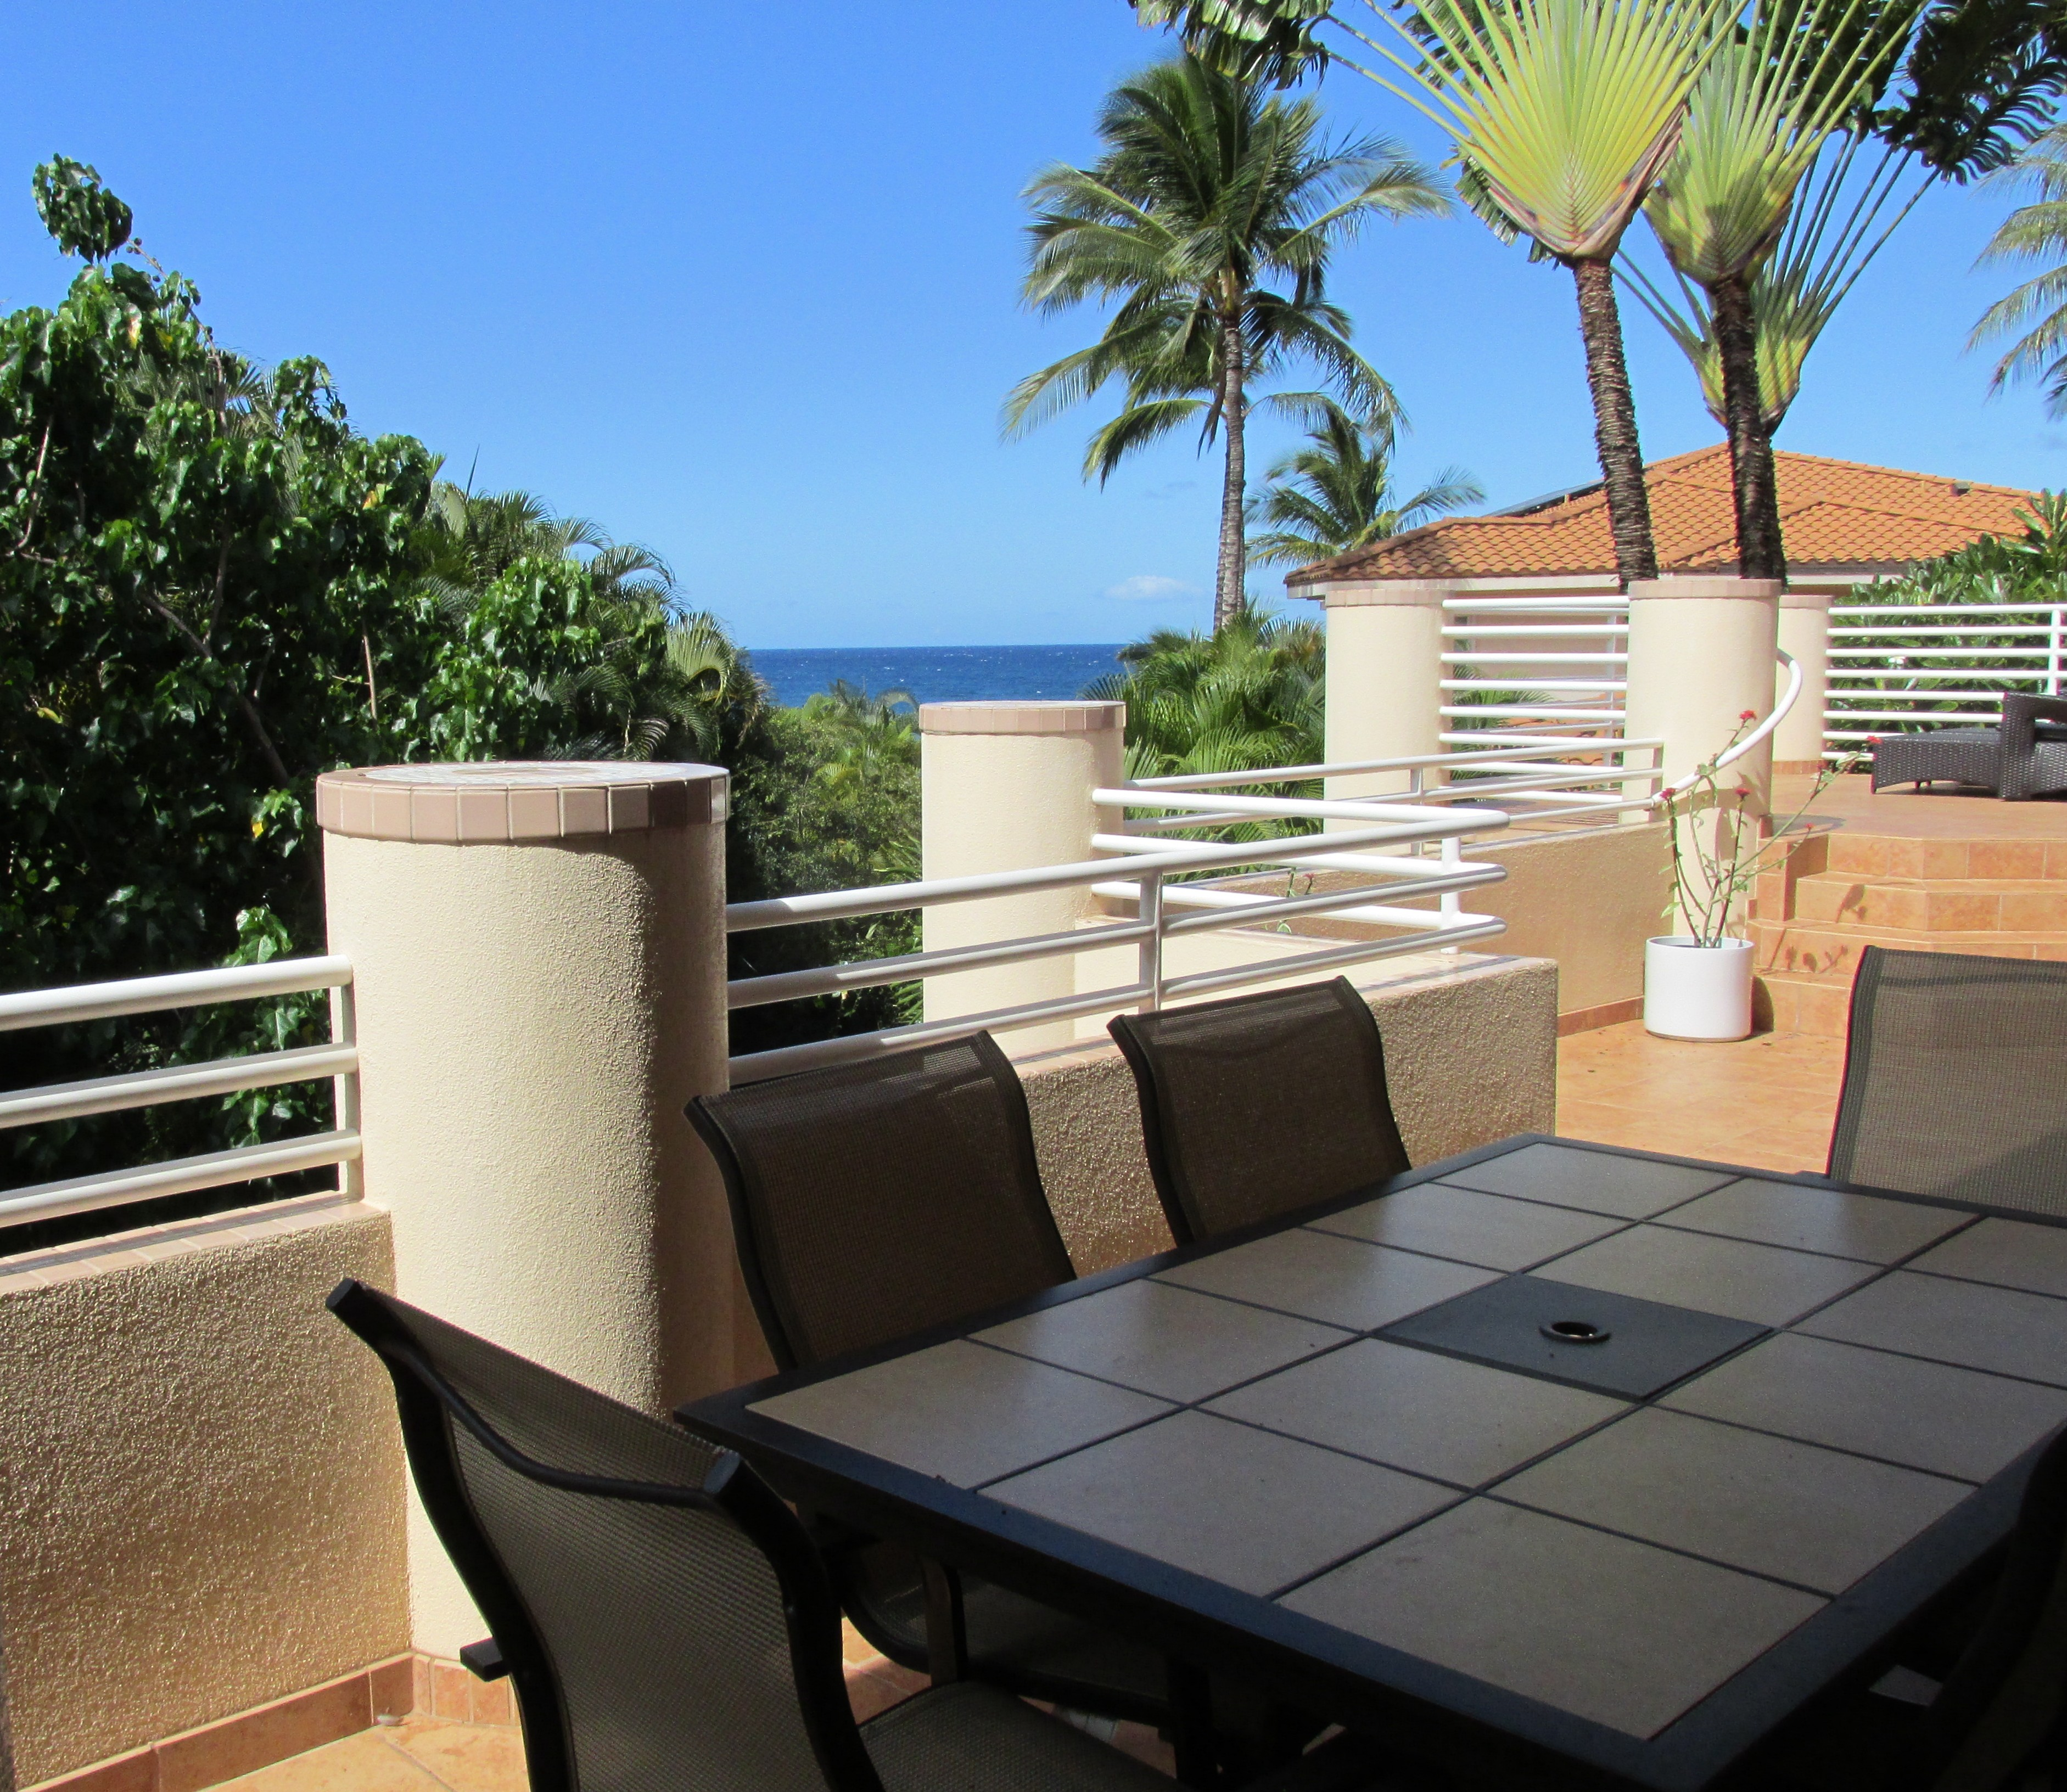 Find Rent House: Wailea Sapphire Estate: 5 Bedroom Vacation Home Rental